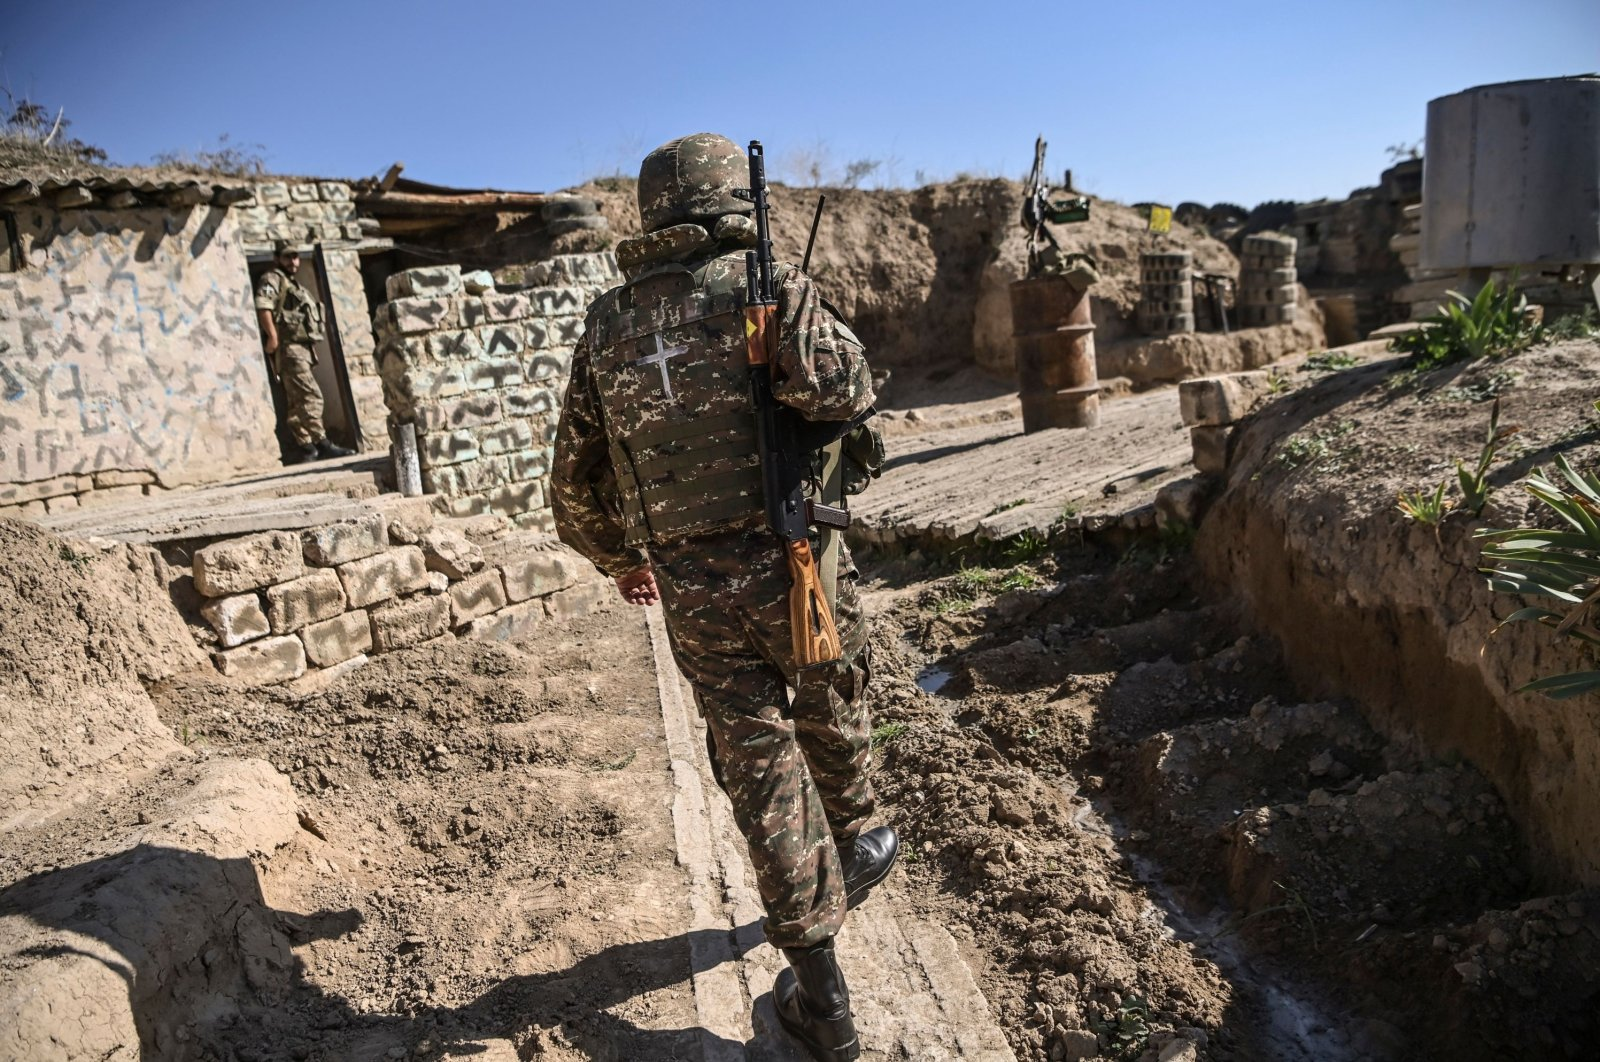 An Armenian soldier walks as troops hold positions on the front line in the occupied region of Nagorno-Karabakh on Oct. 25, 2020. (AFP Photo)